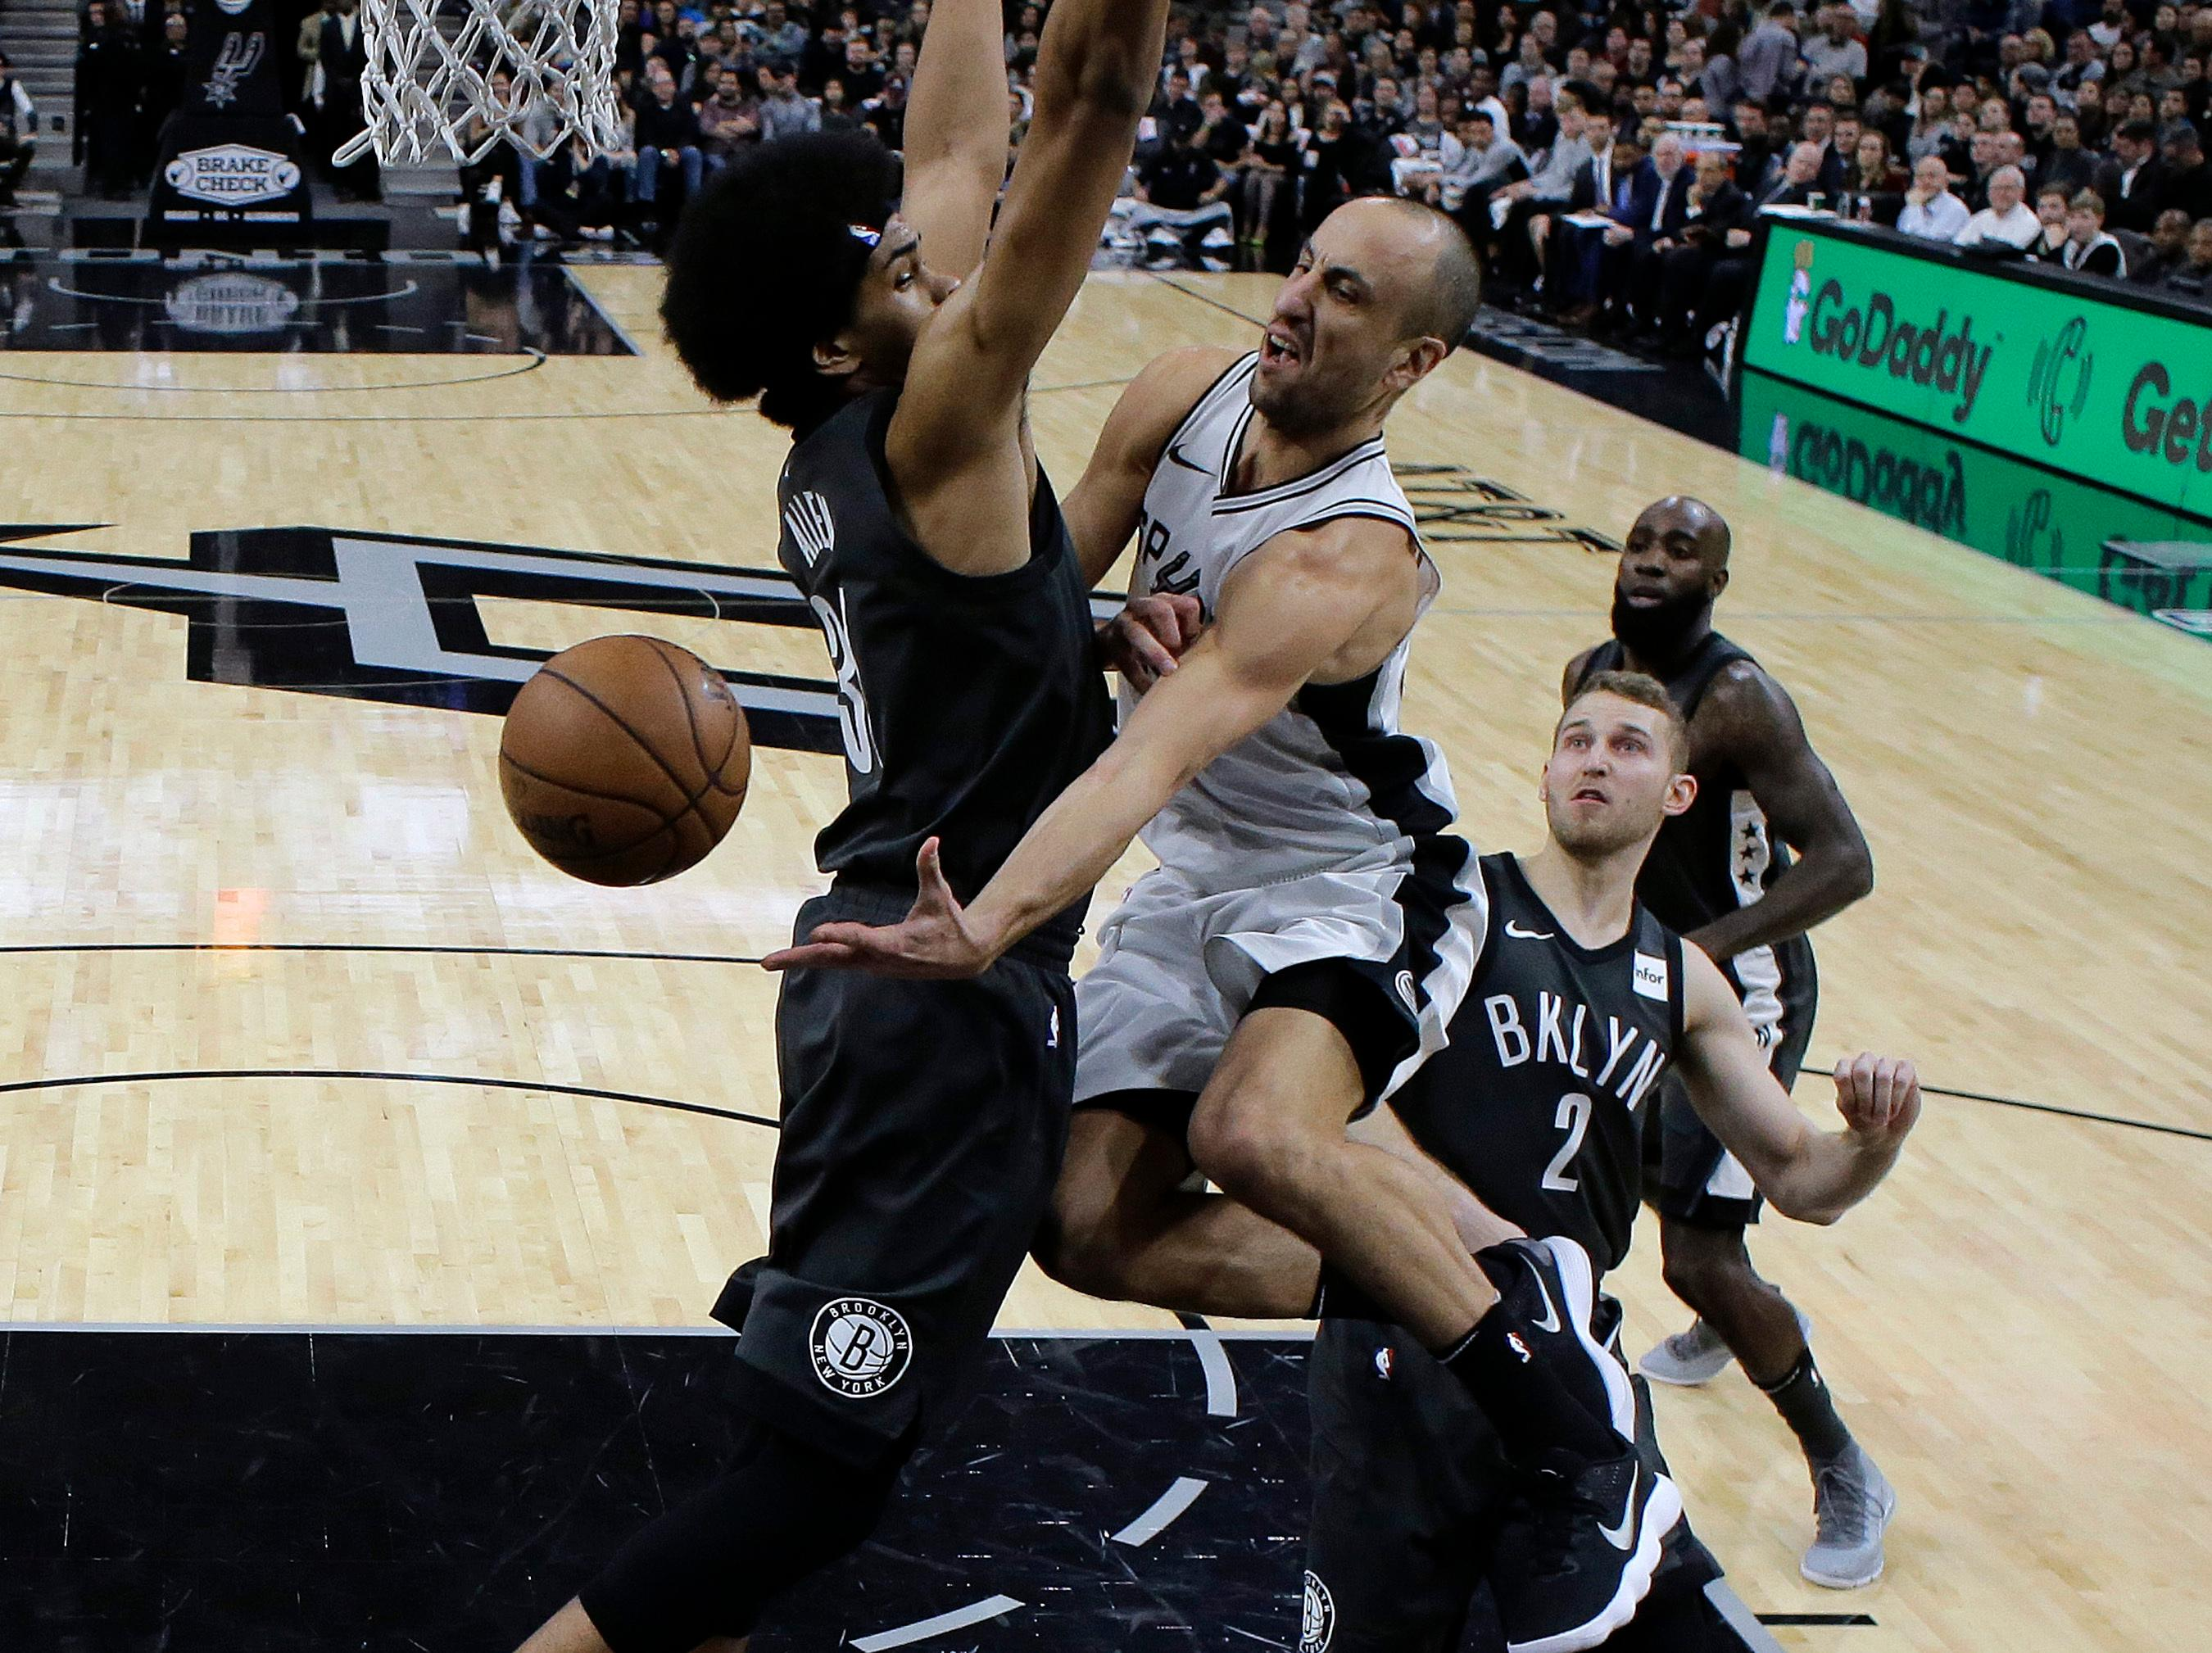 San Antonio Spurs guard Manu Ginobili, center, drives to the basket past Brooklyn Nets center Jarrett Allen, left, during the first half of an NBA basketball game, Tuesday, Dec. 26, 2017, in San Antonio. (AP Photo/Eric Gay)